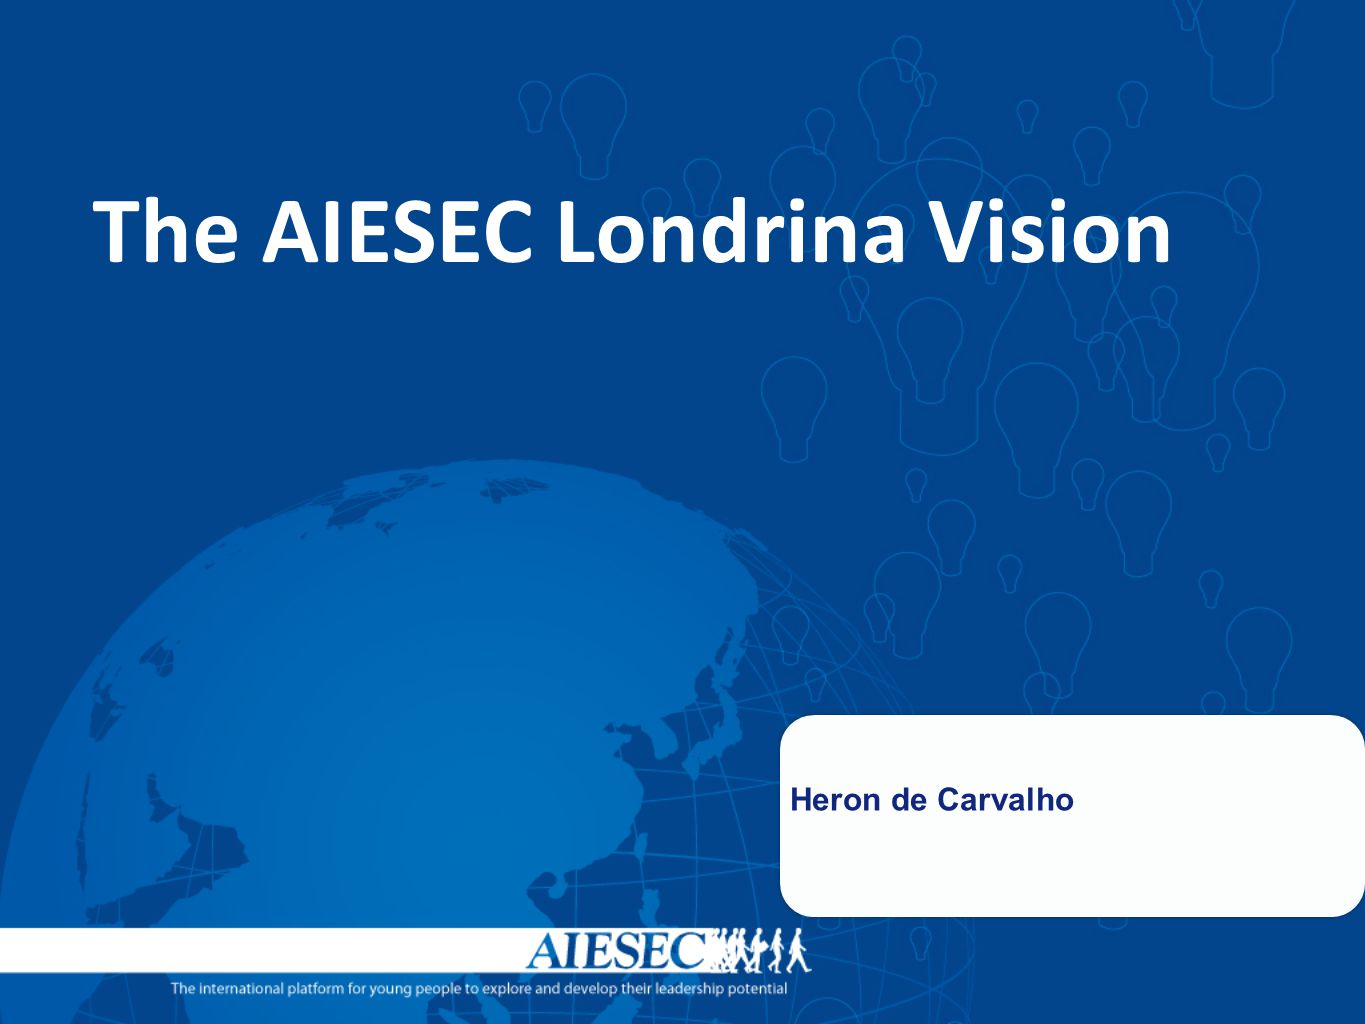 The AIESEC Londrina Vision